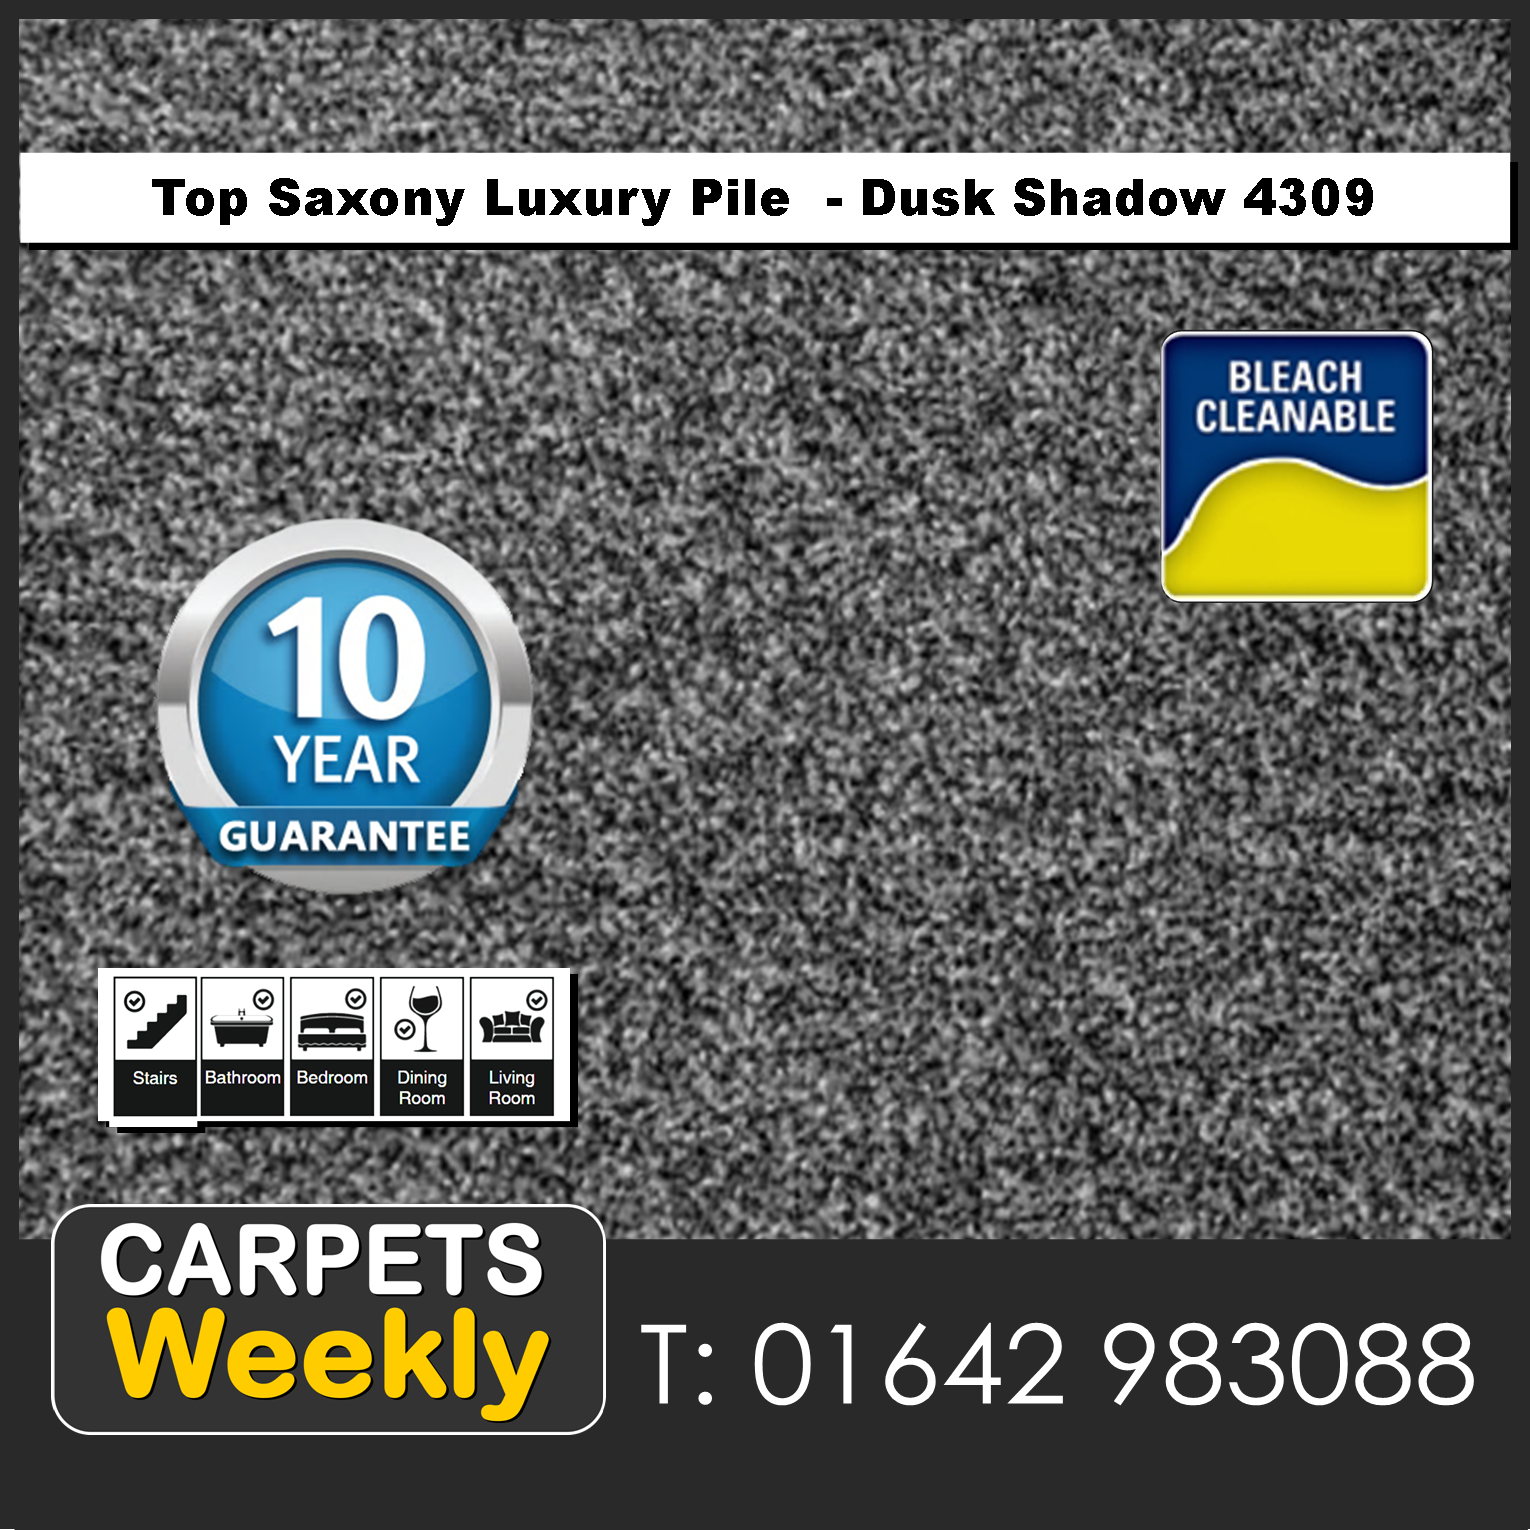 Top Saxony Dark Shadow - 4309 Carpets Weekly